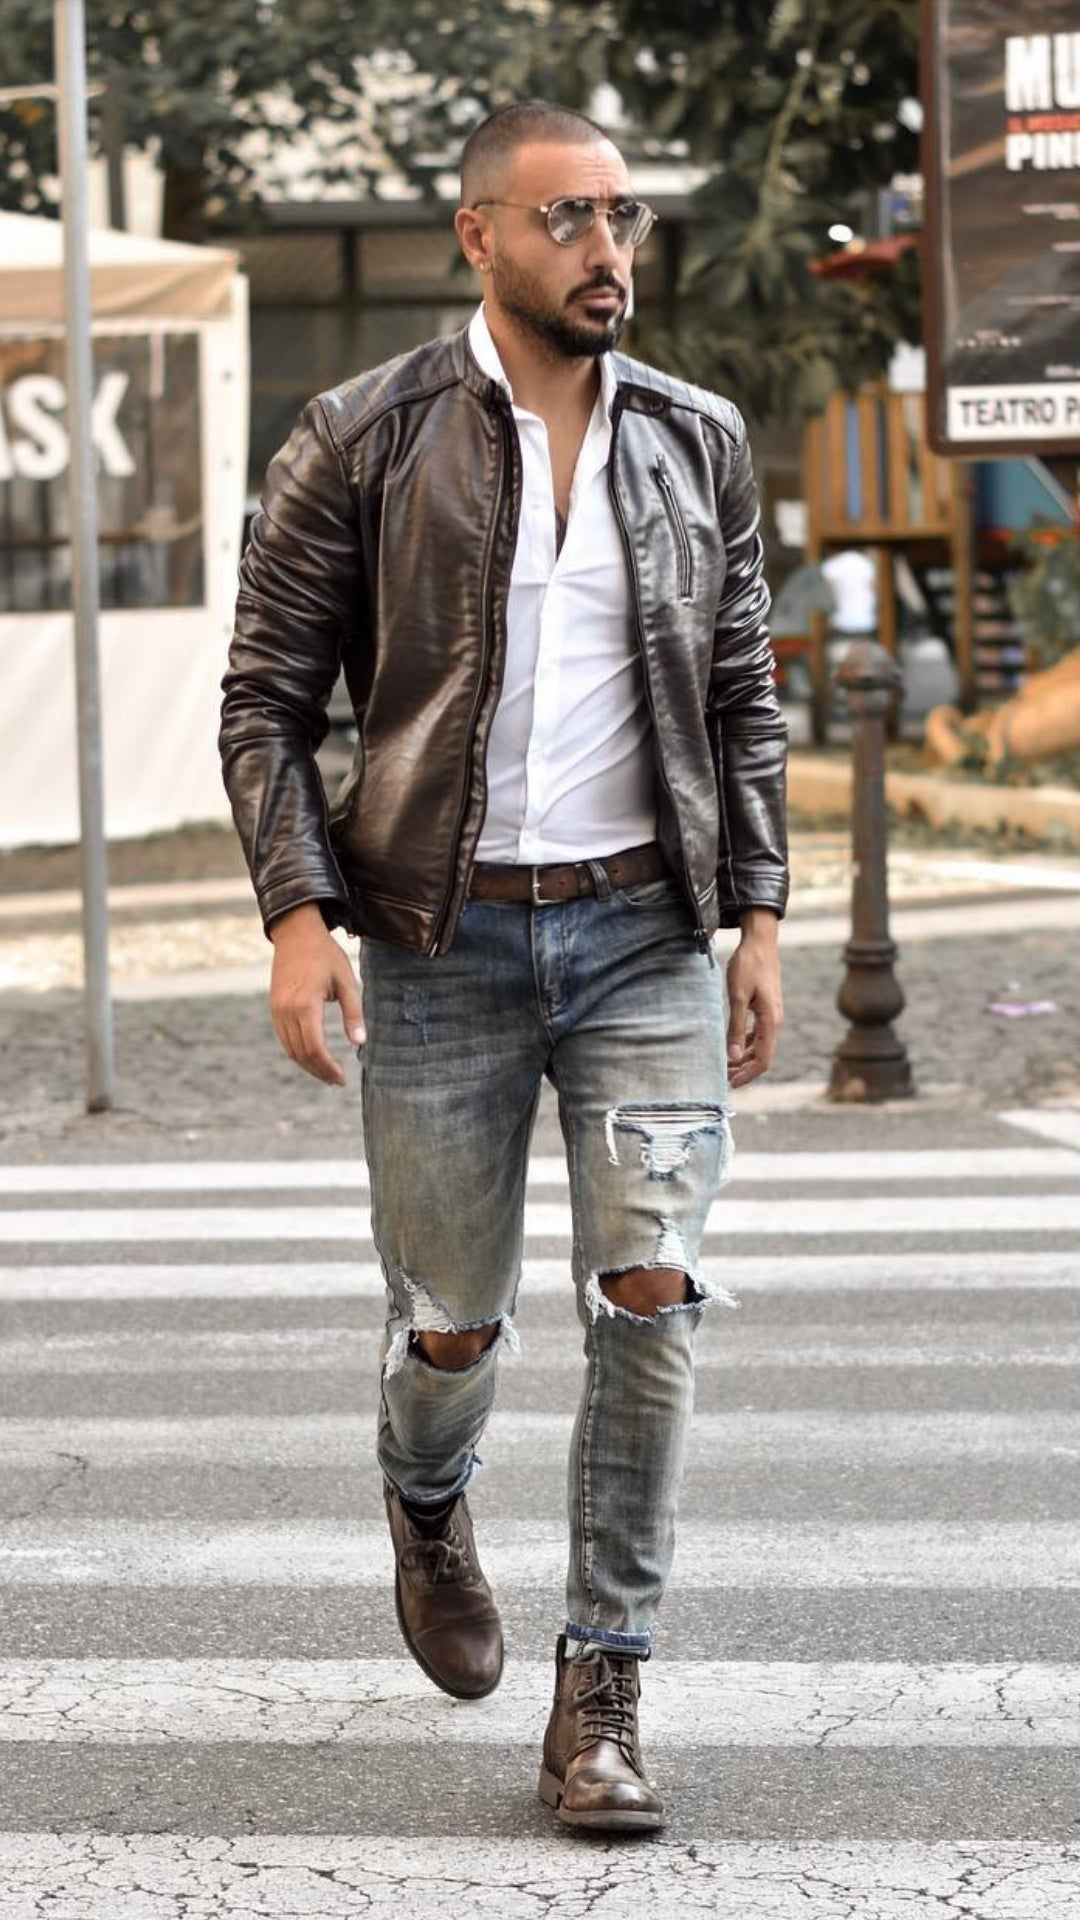 Cool winter jacket outfits for men. #mens #fashion #street #style